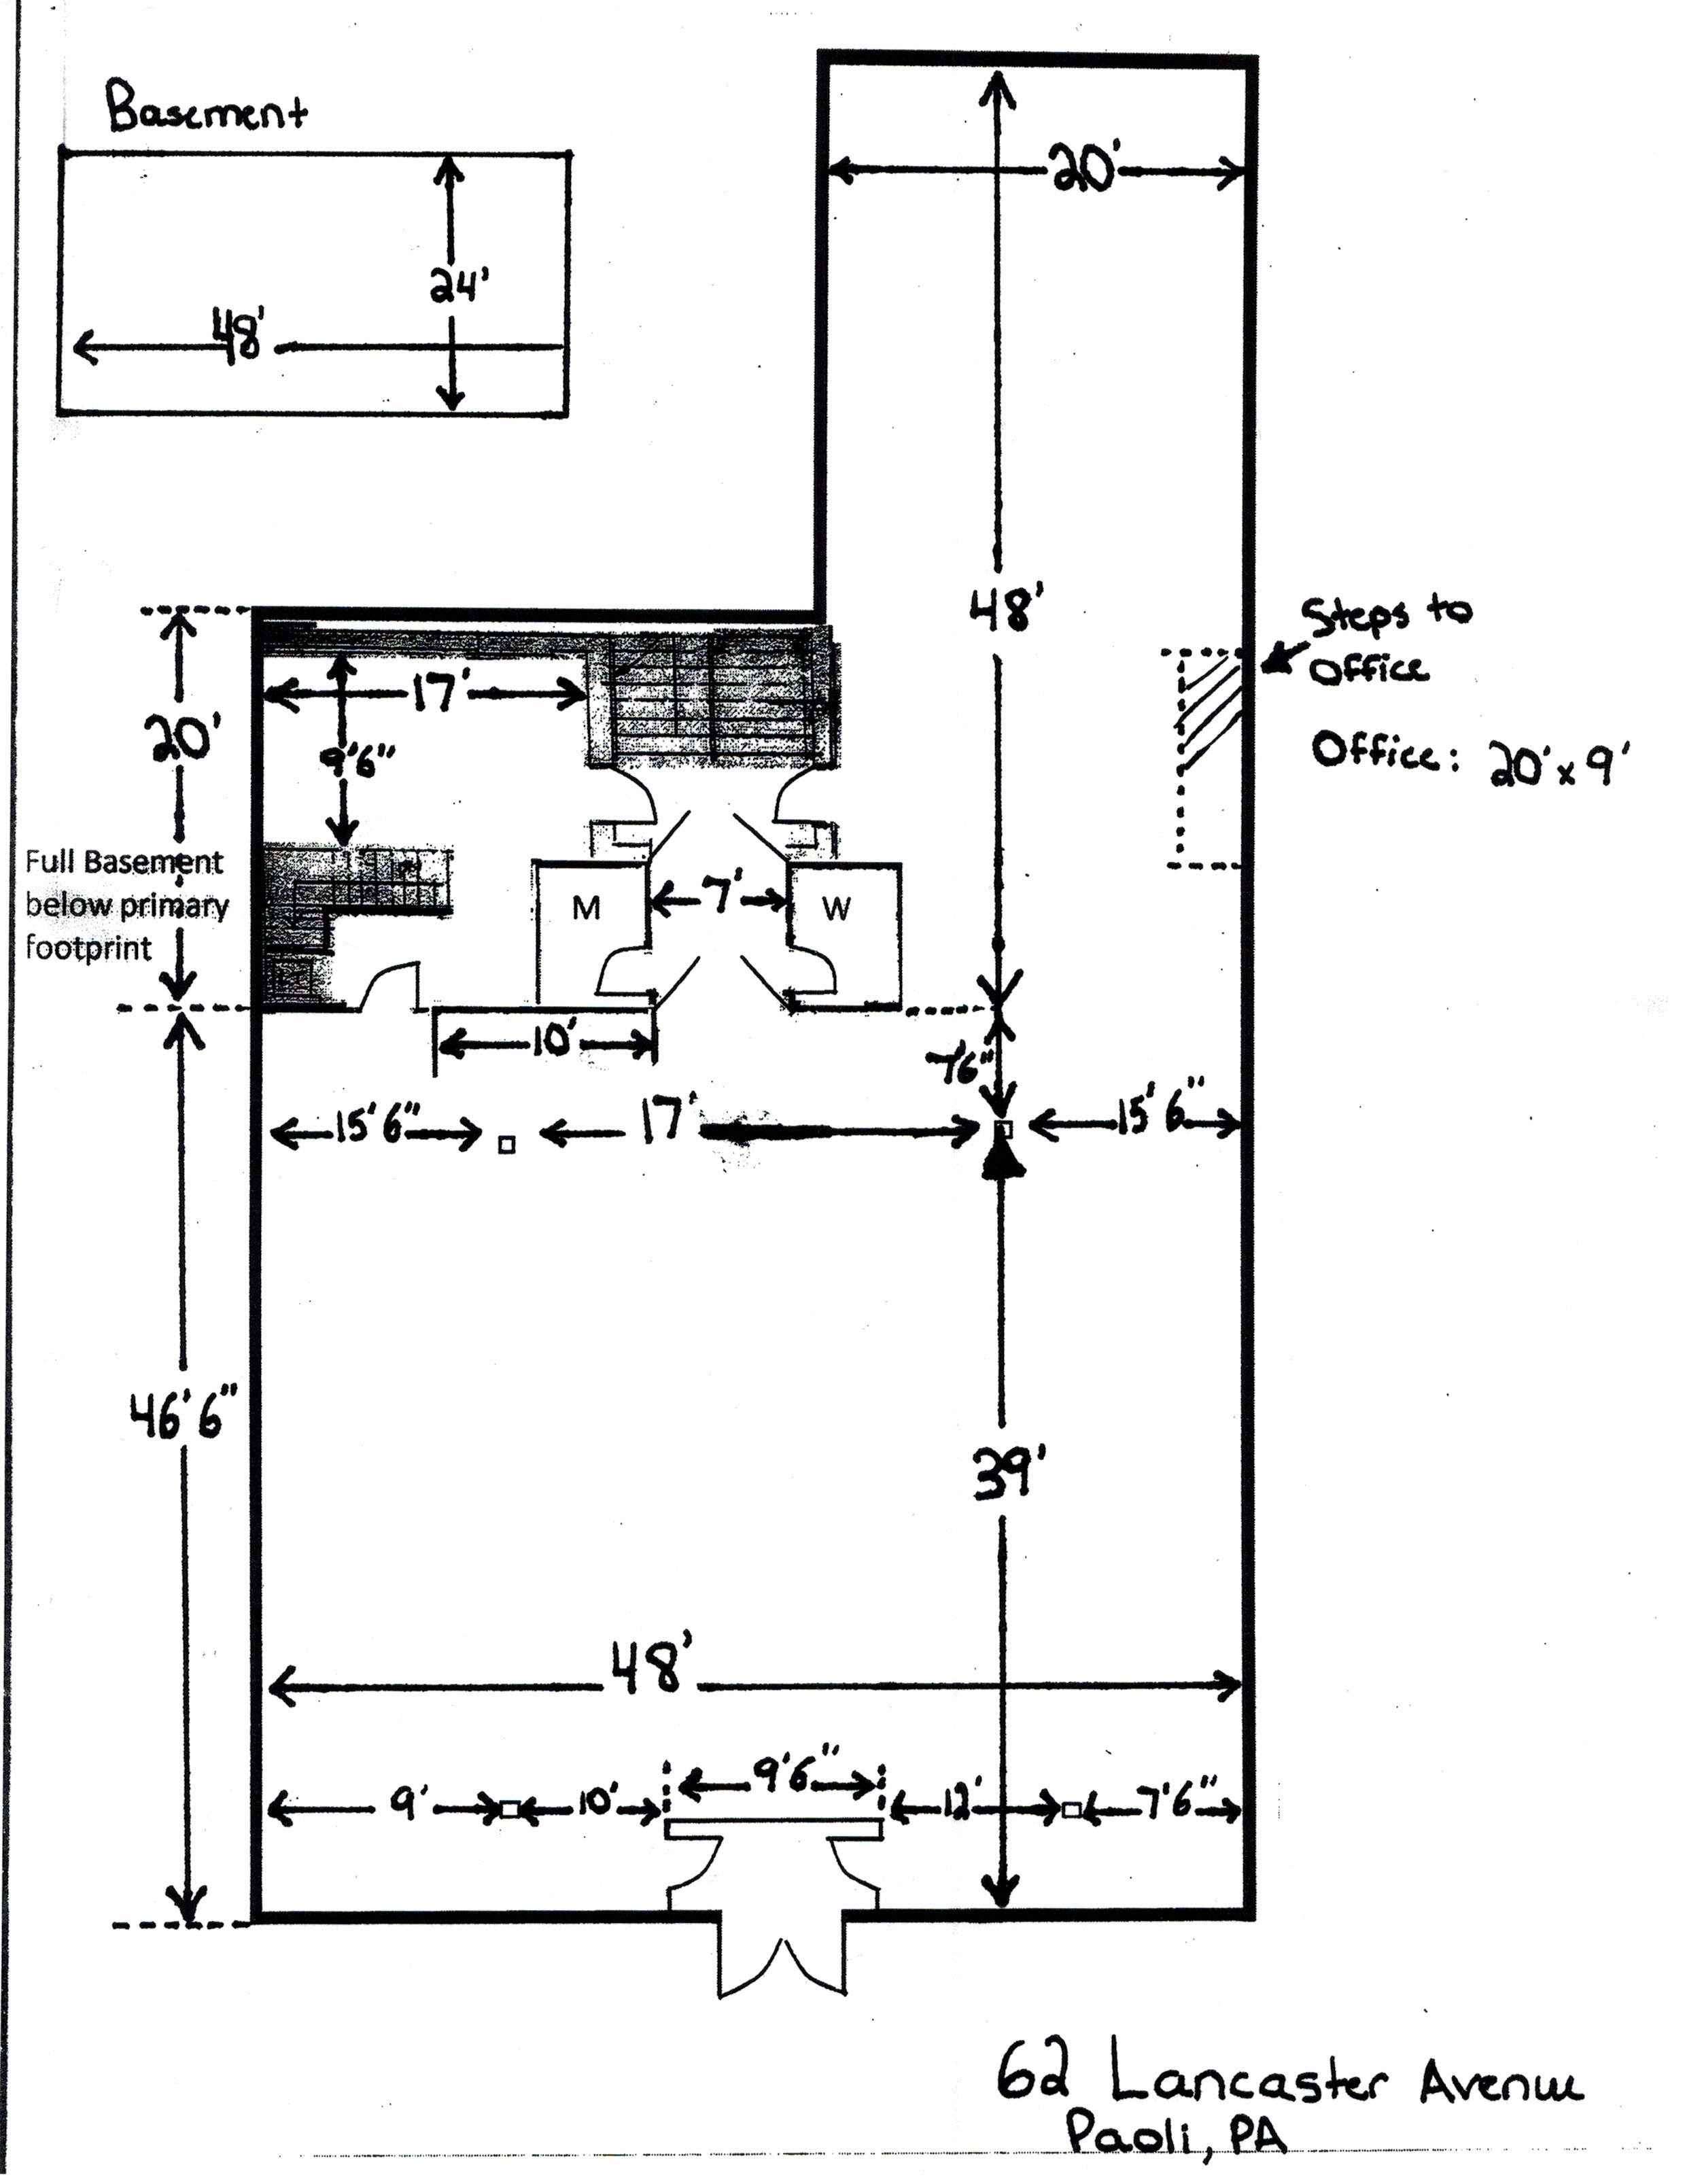 62 E. Lancaster Avenue Floor Plan